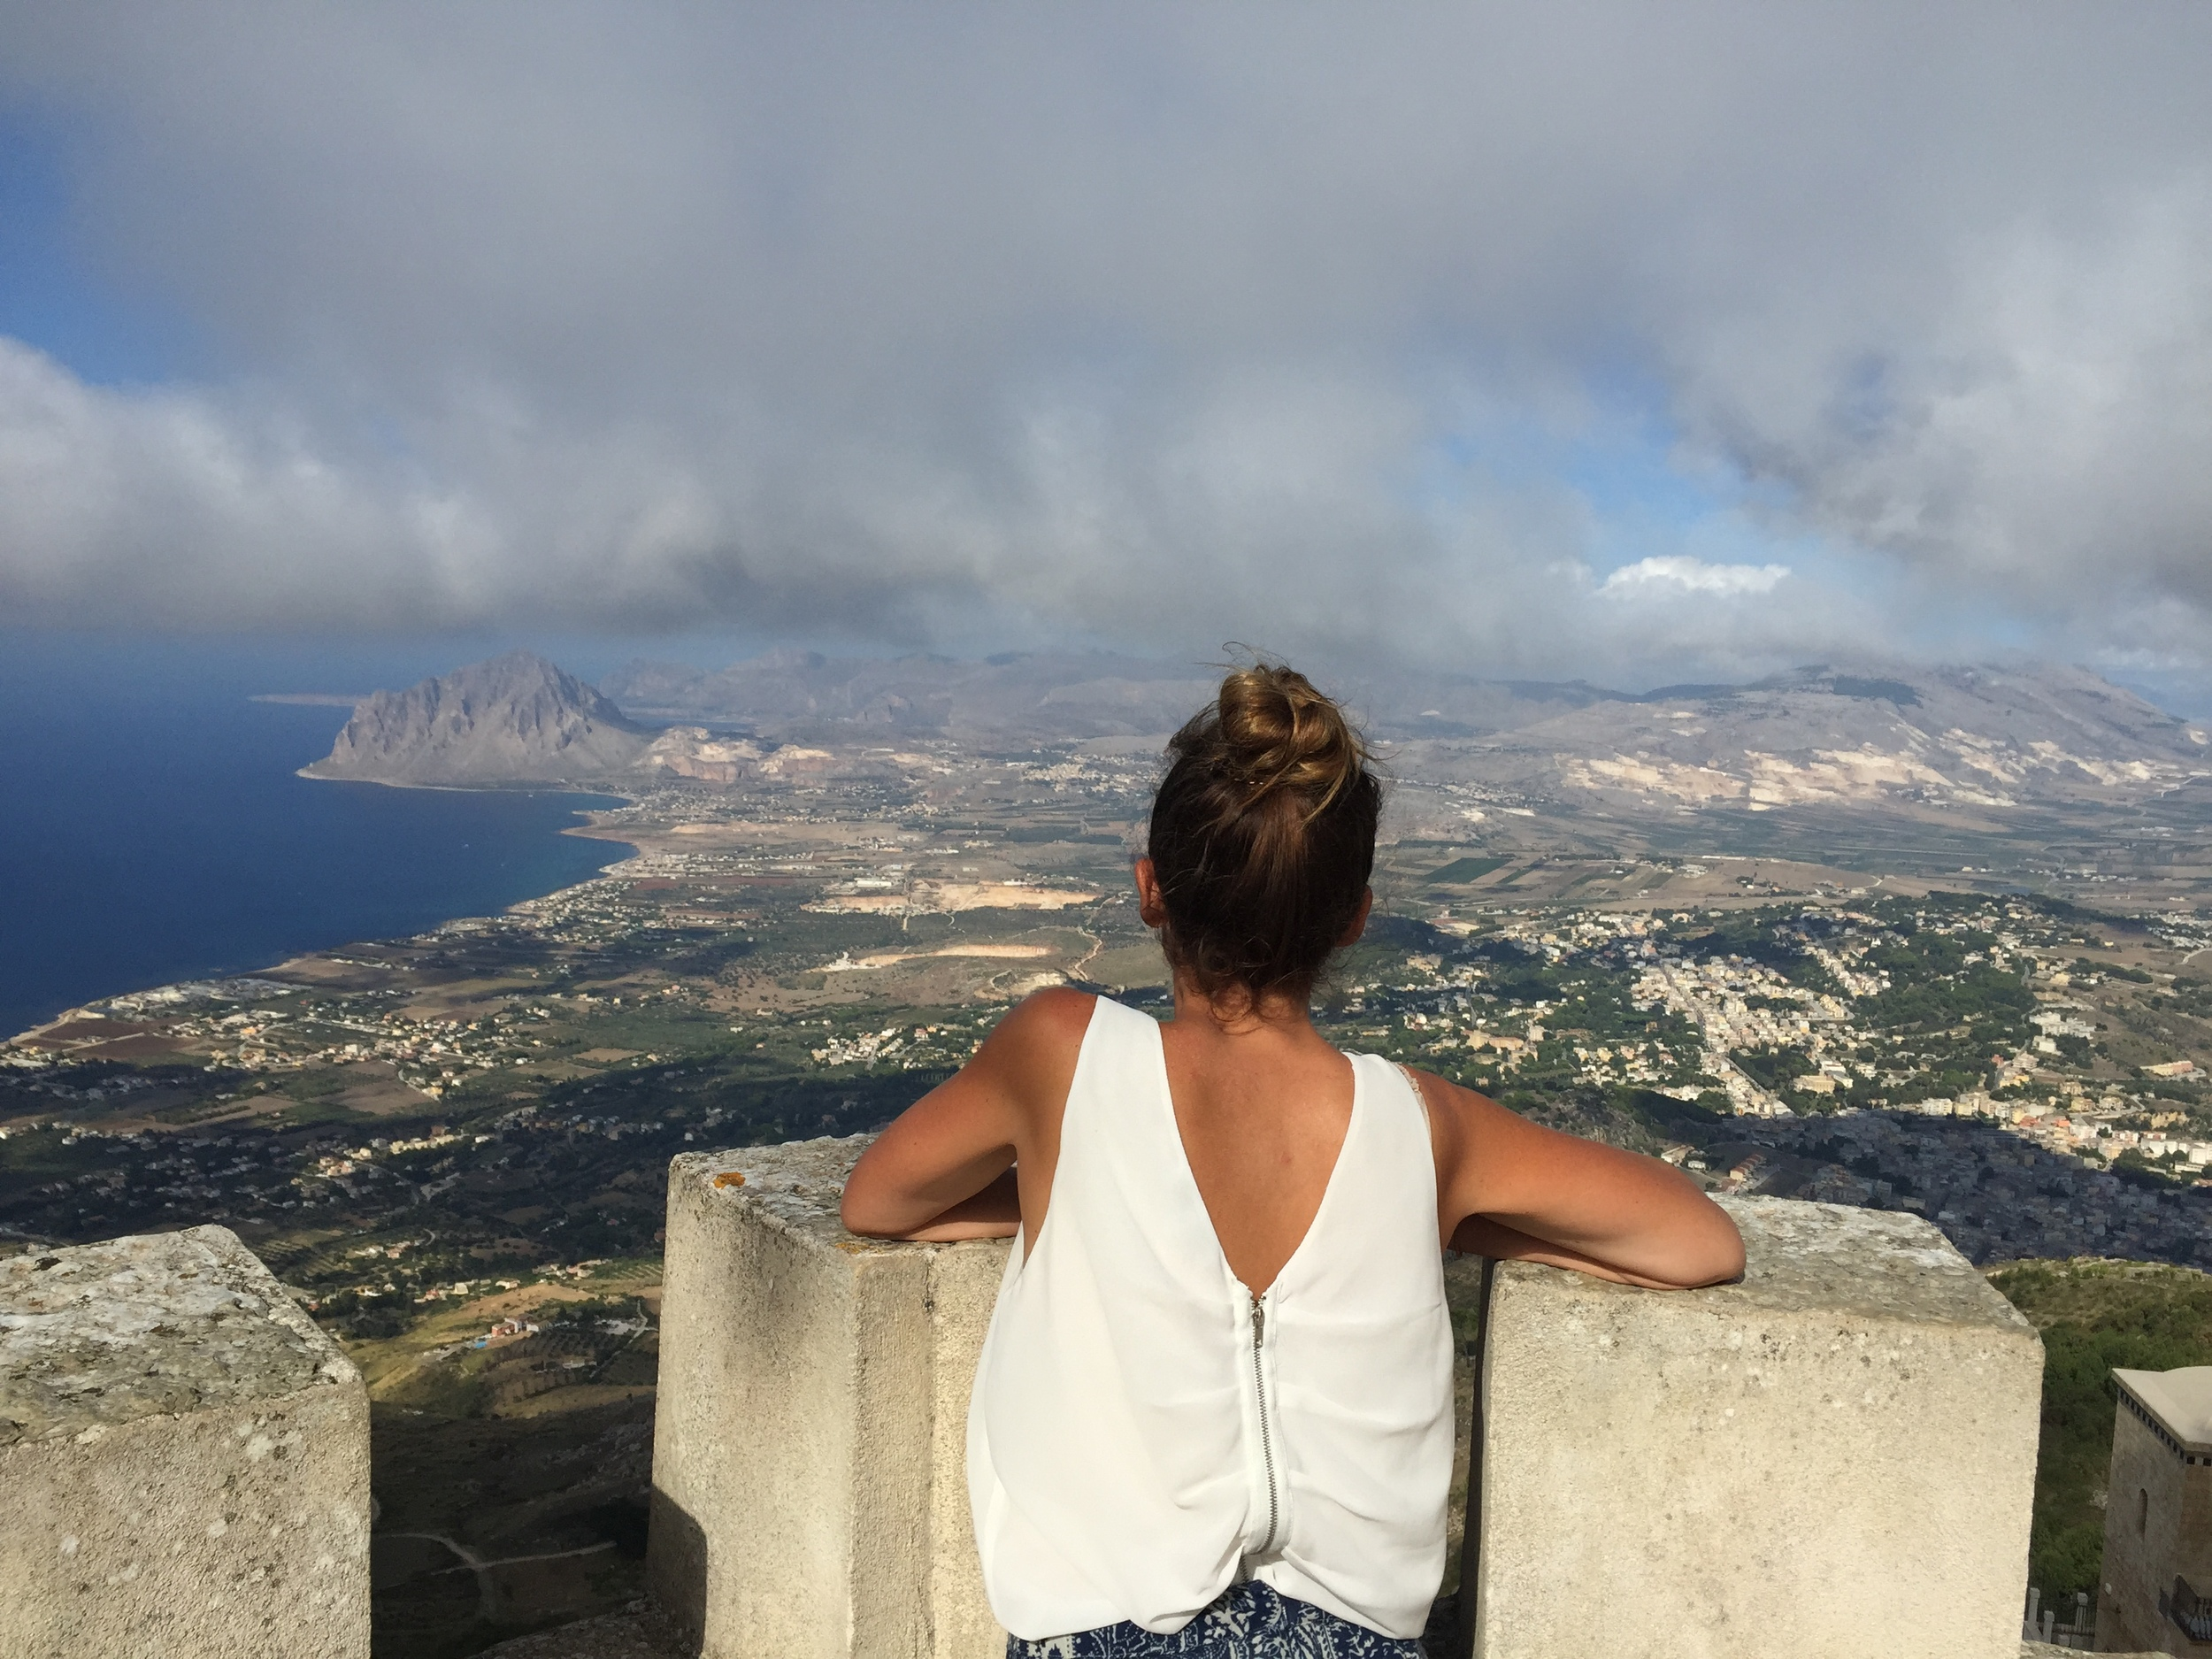 Thousands of people have seen this view in sicily but my eyes capture it differently then everyone else